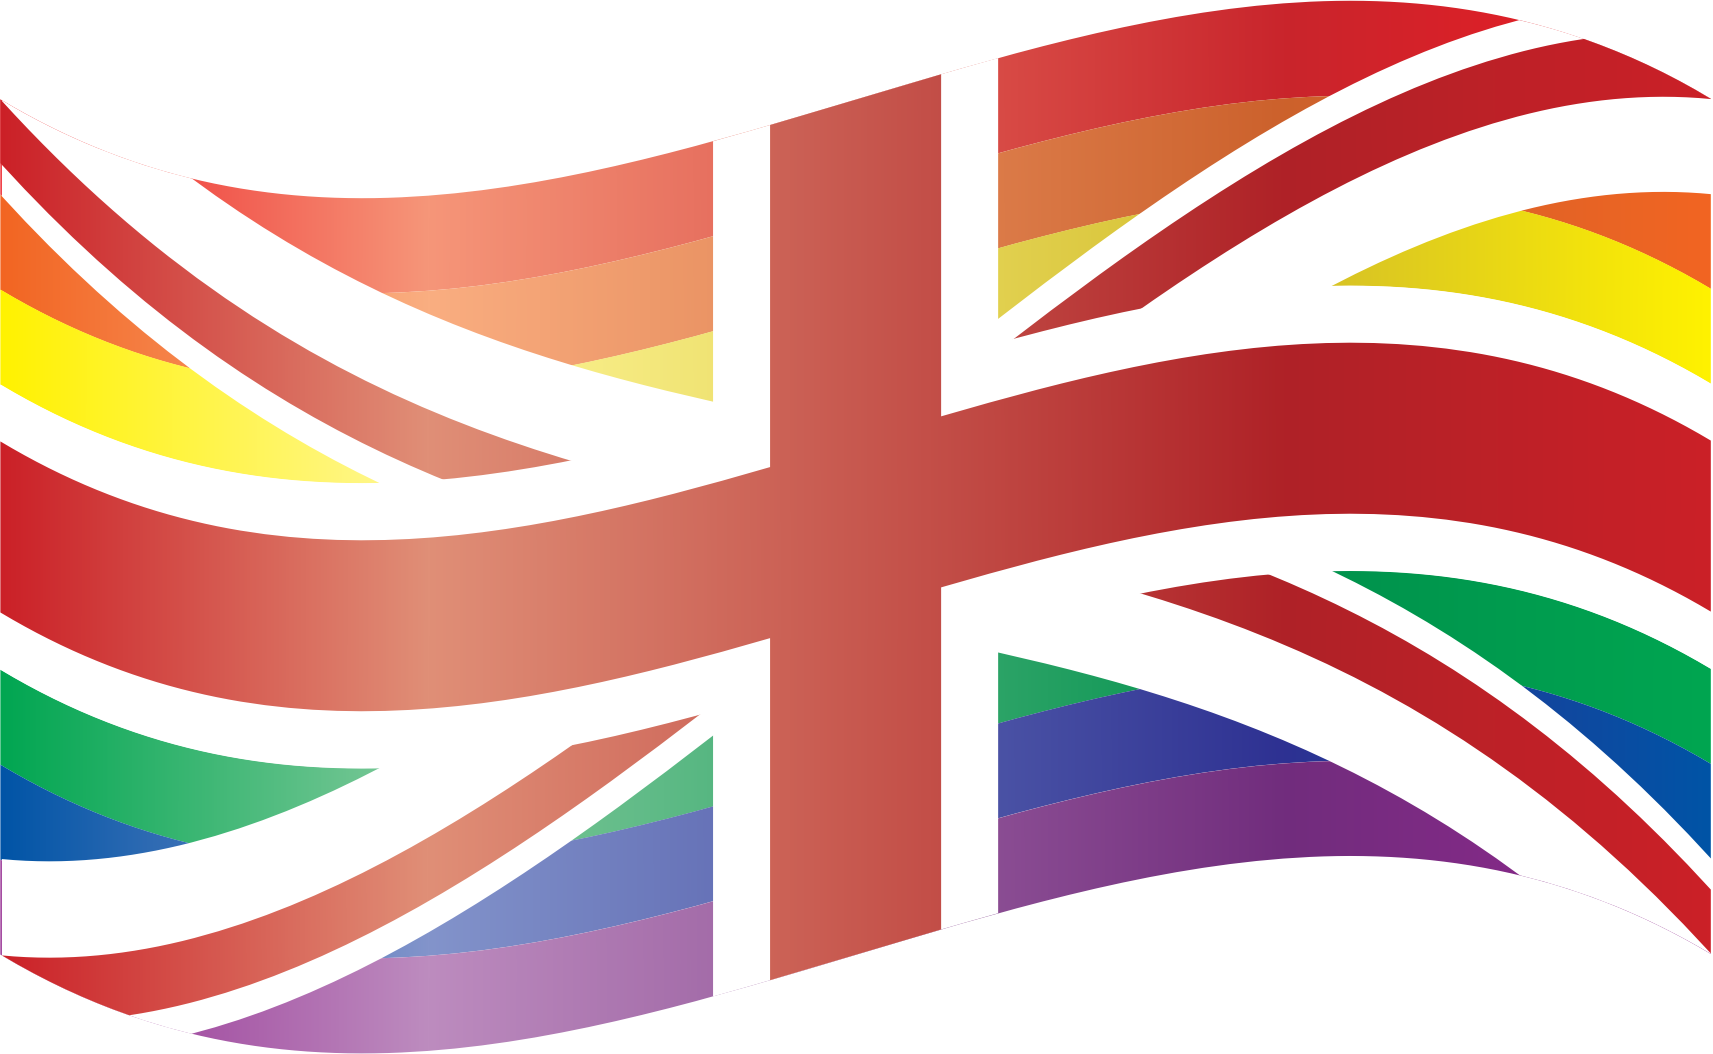 Waving Rainbow Union Flag by feorag